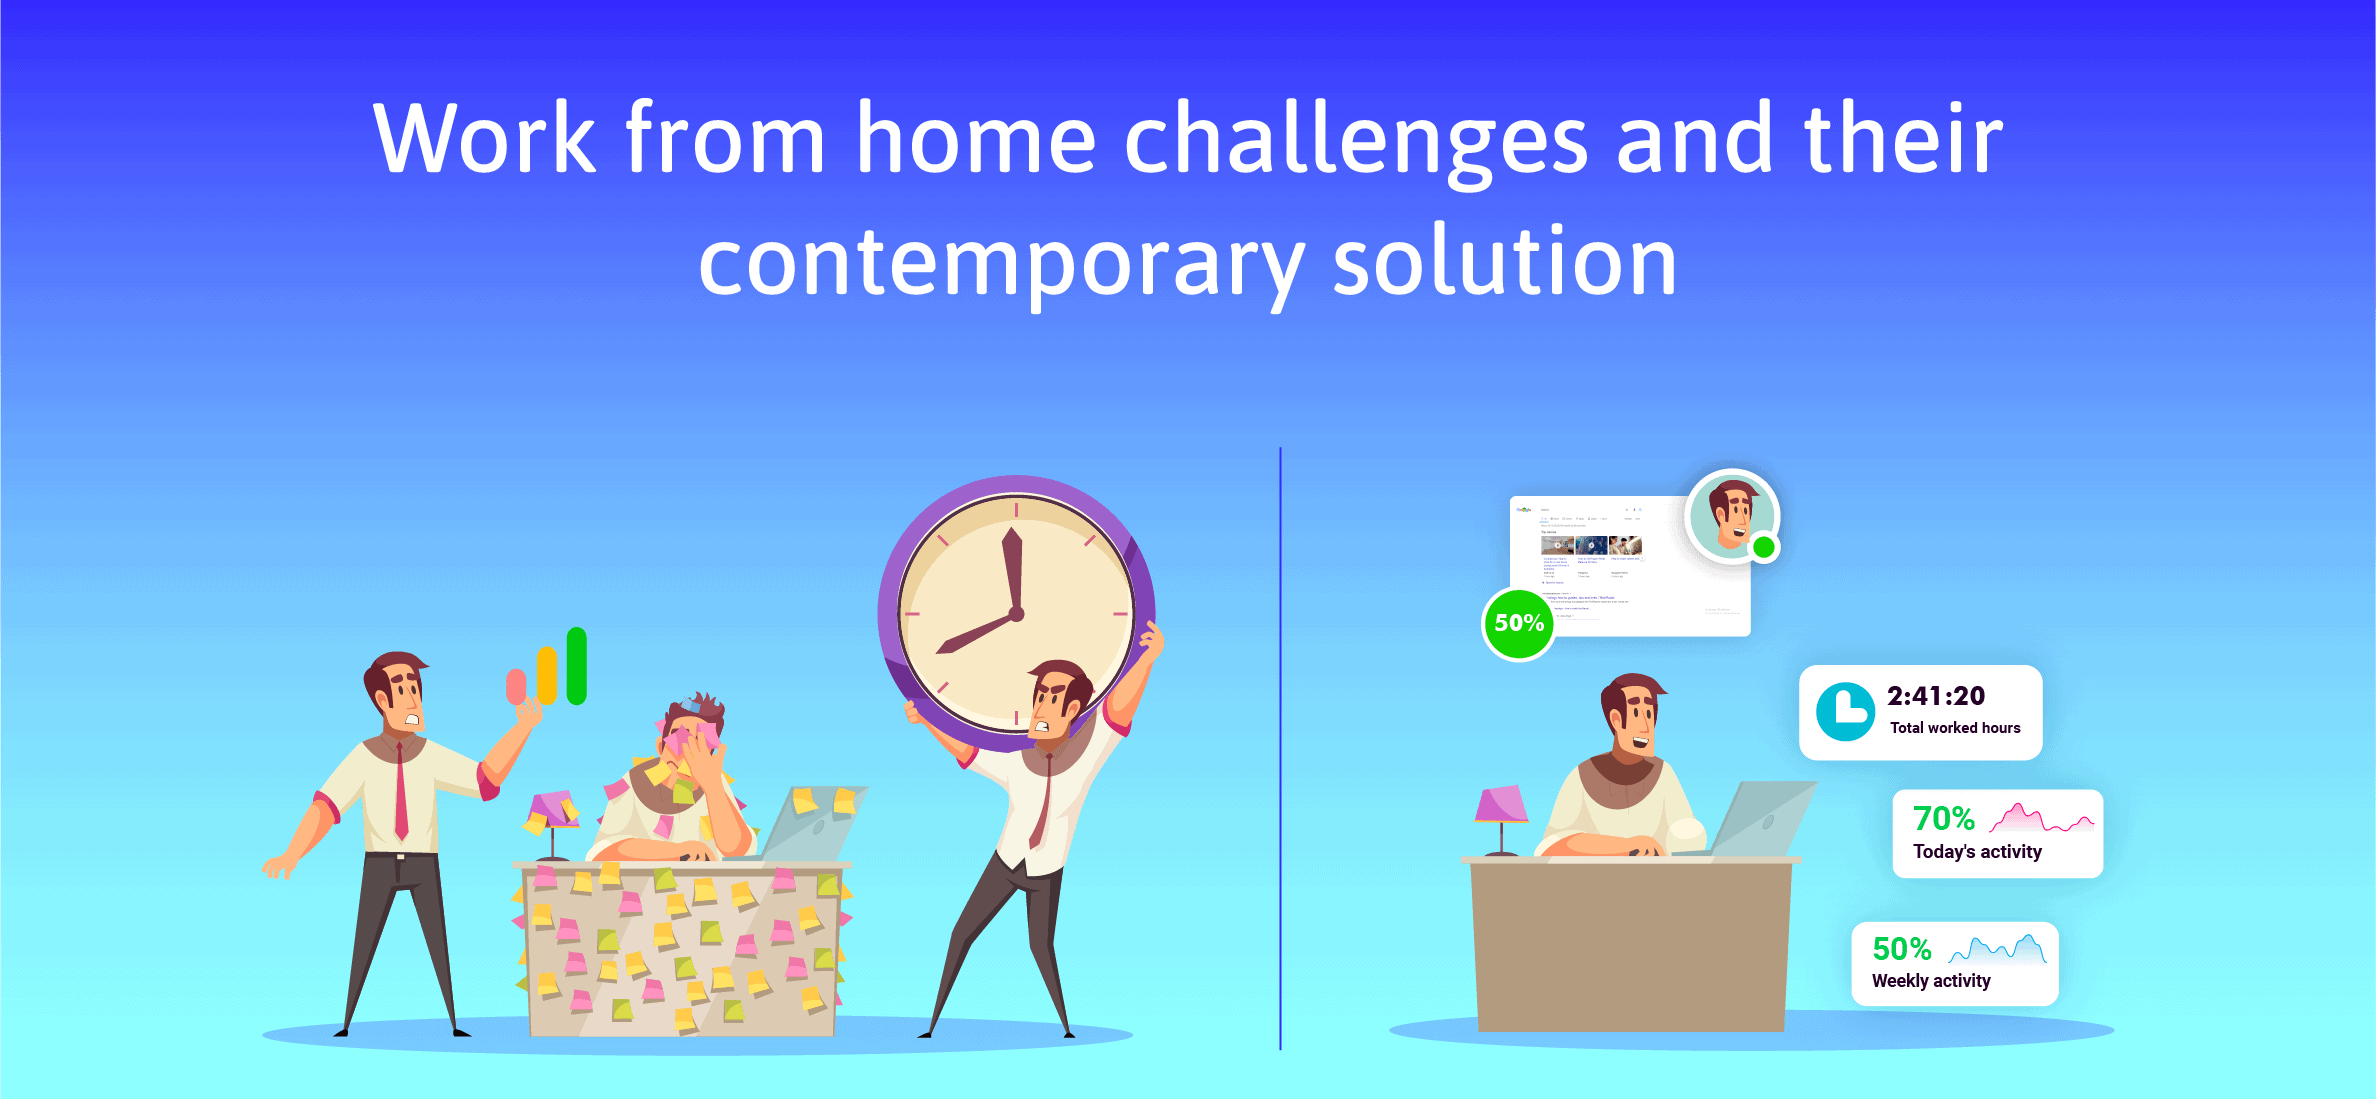 Work from home challenges and their contemporary solution